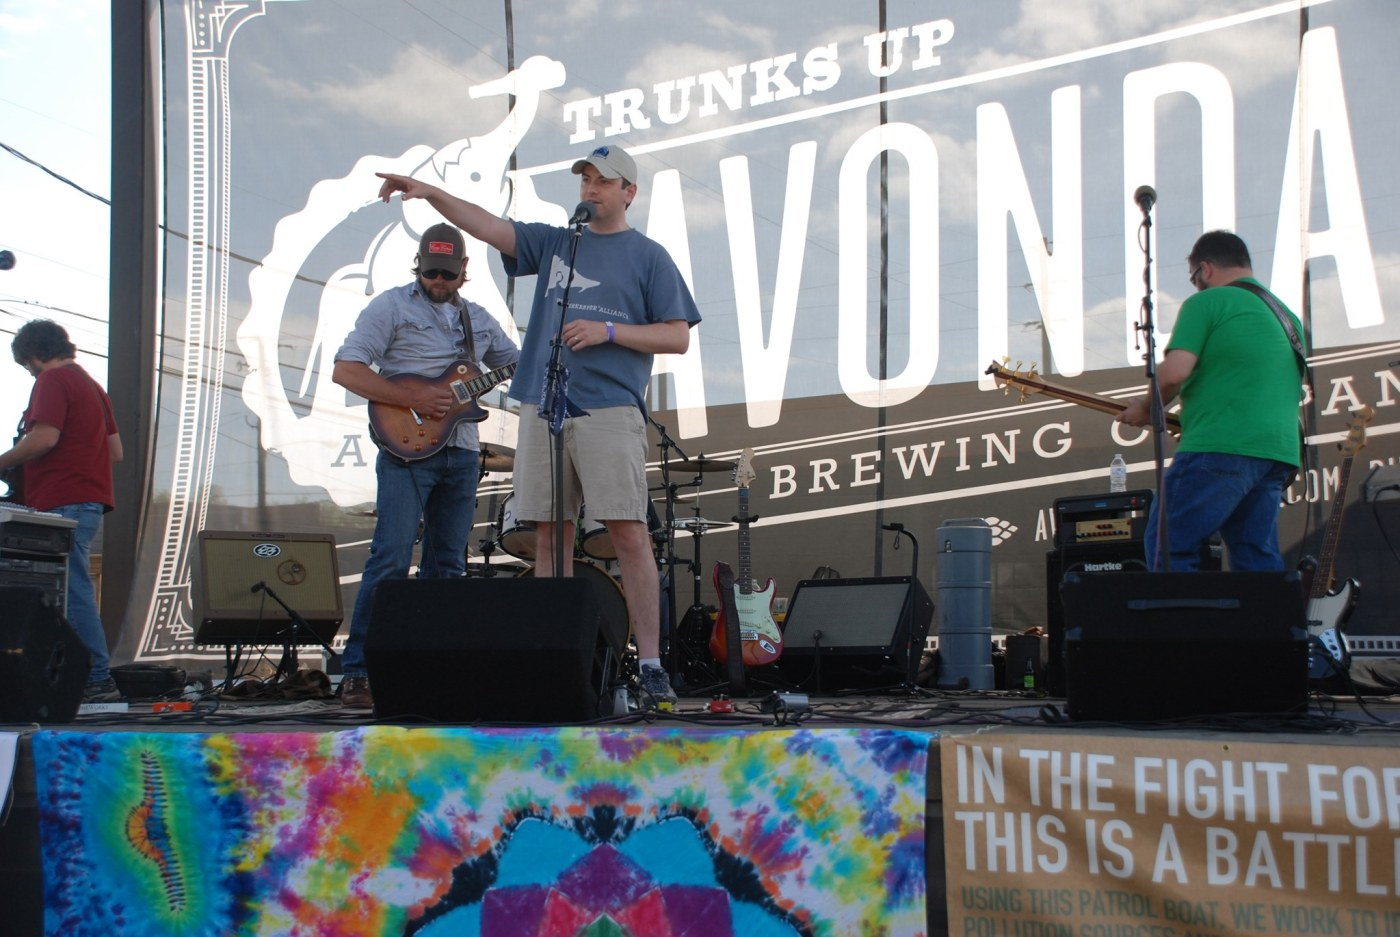 The last, but not least conservation event: Avondale Brewery hosts Earthbound's Earthfest